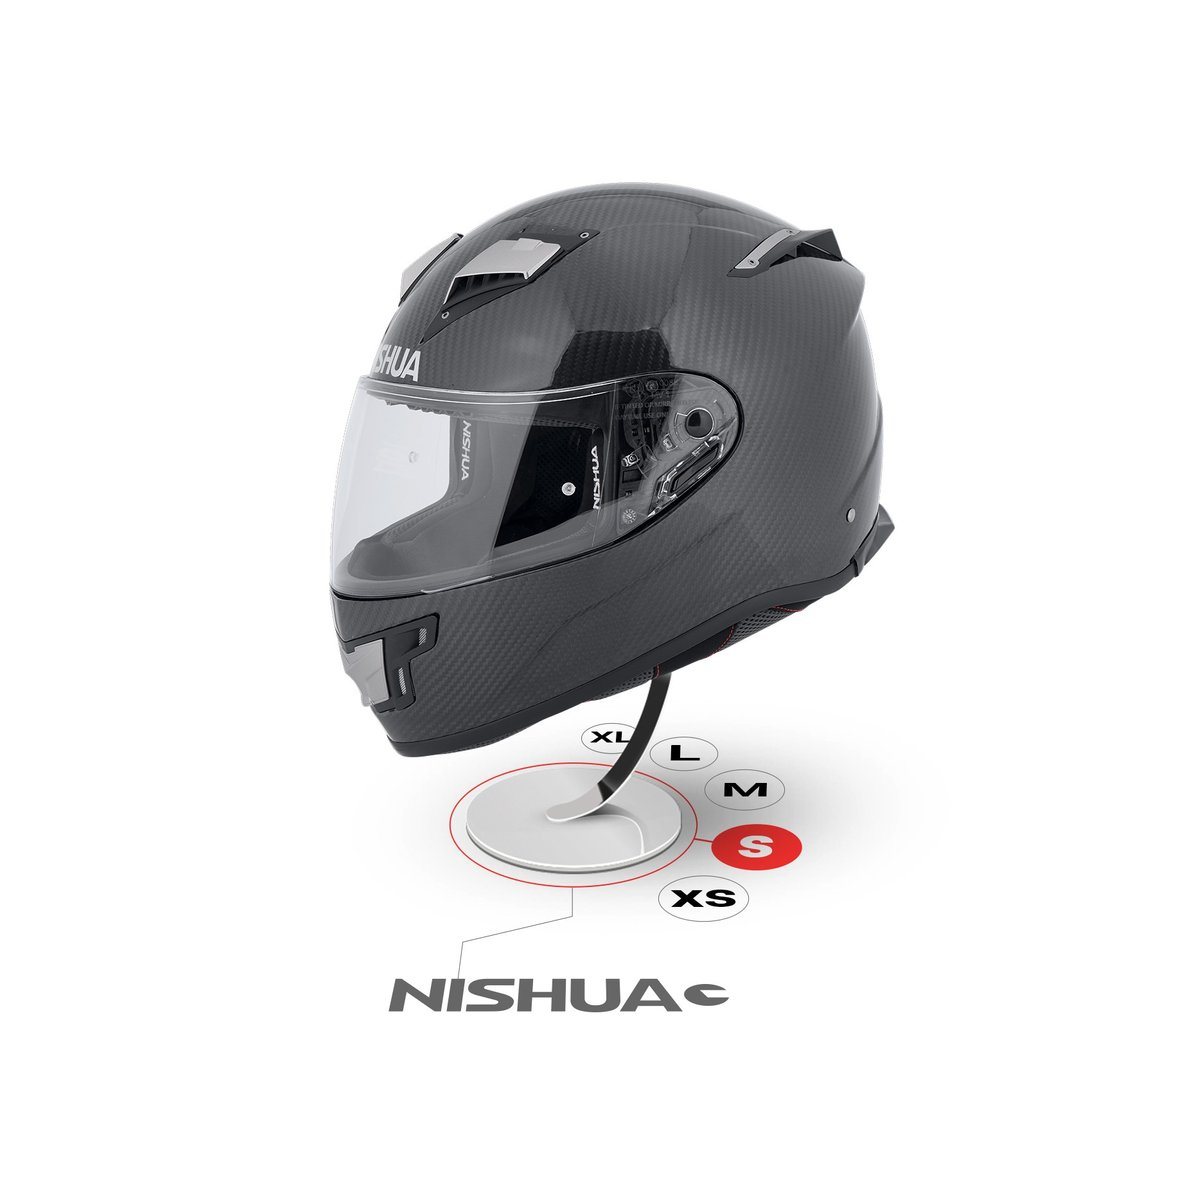 Nishua NRX-2 Carbon Full-Face-Helmet